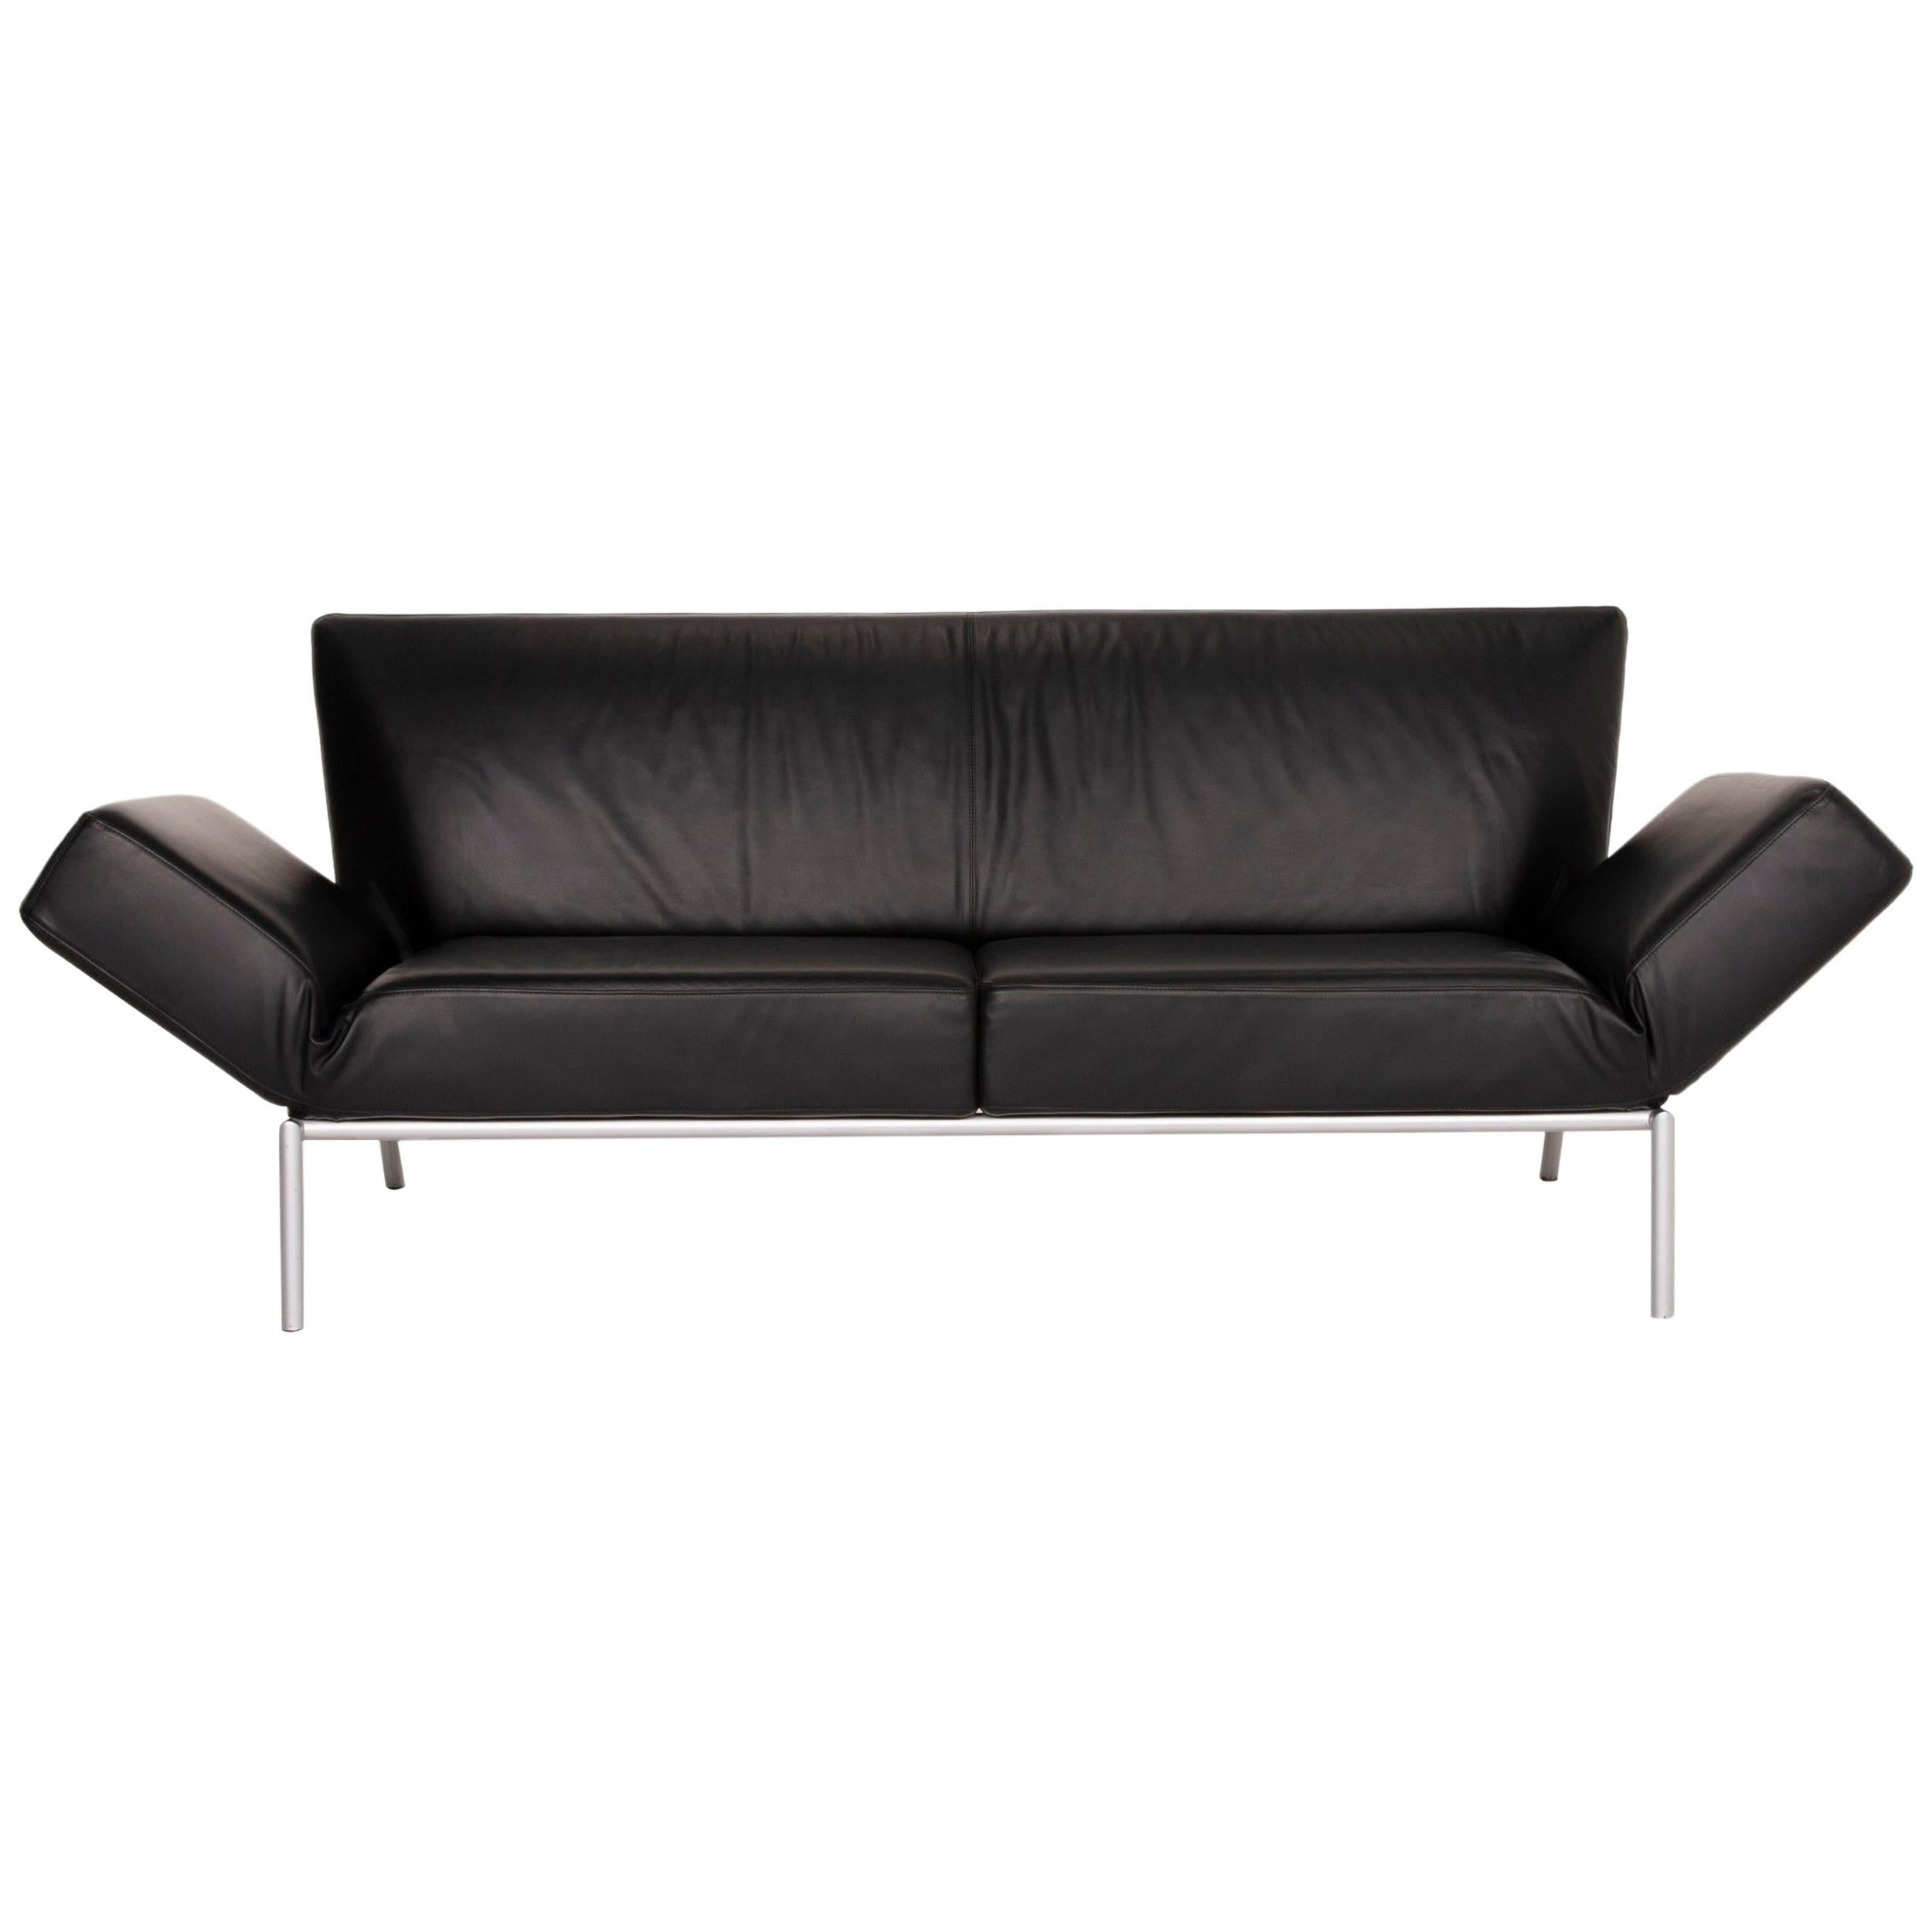 COR Attendo Leather Sofa Black Three-Seater Function Couch